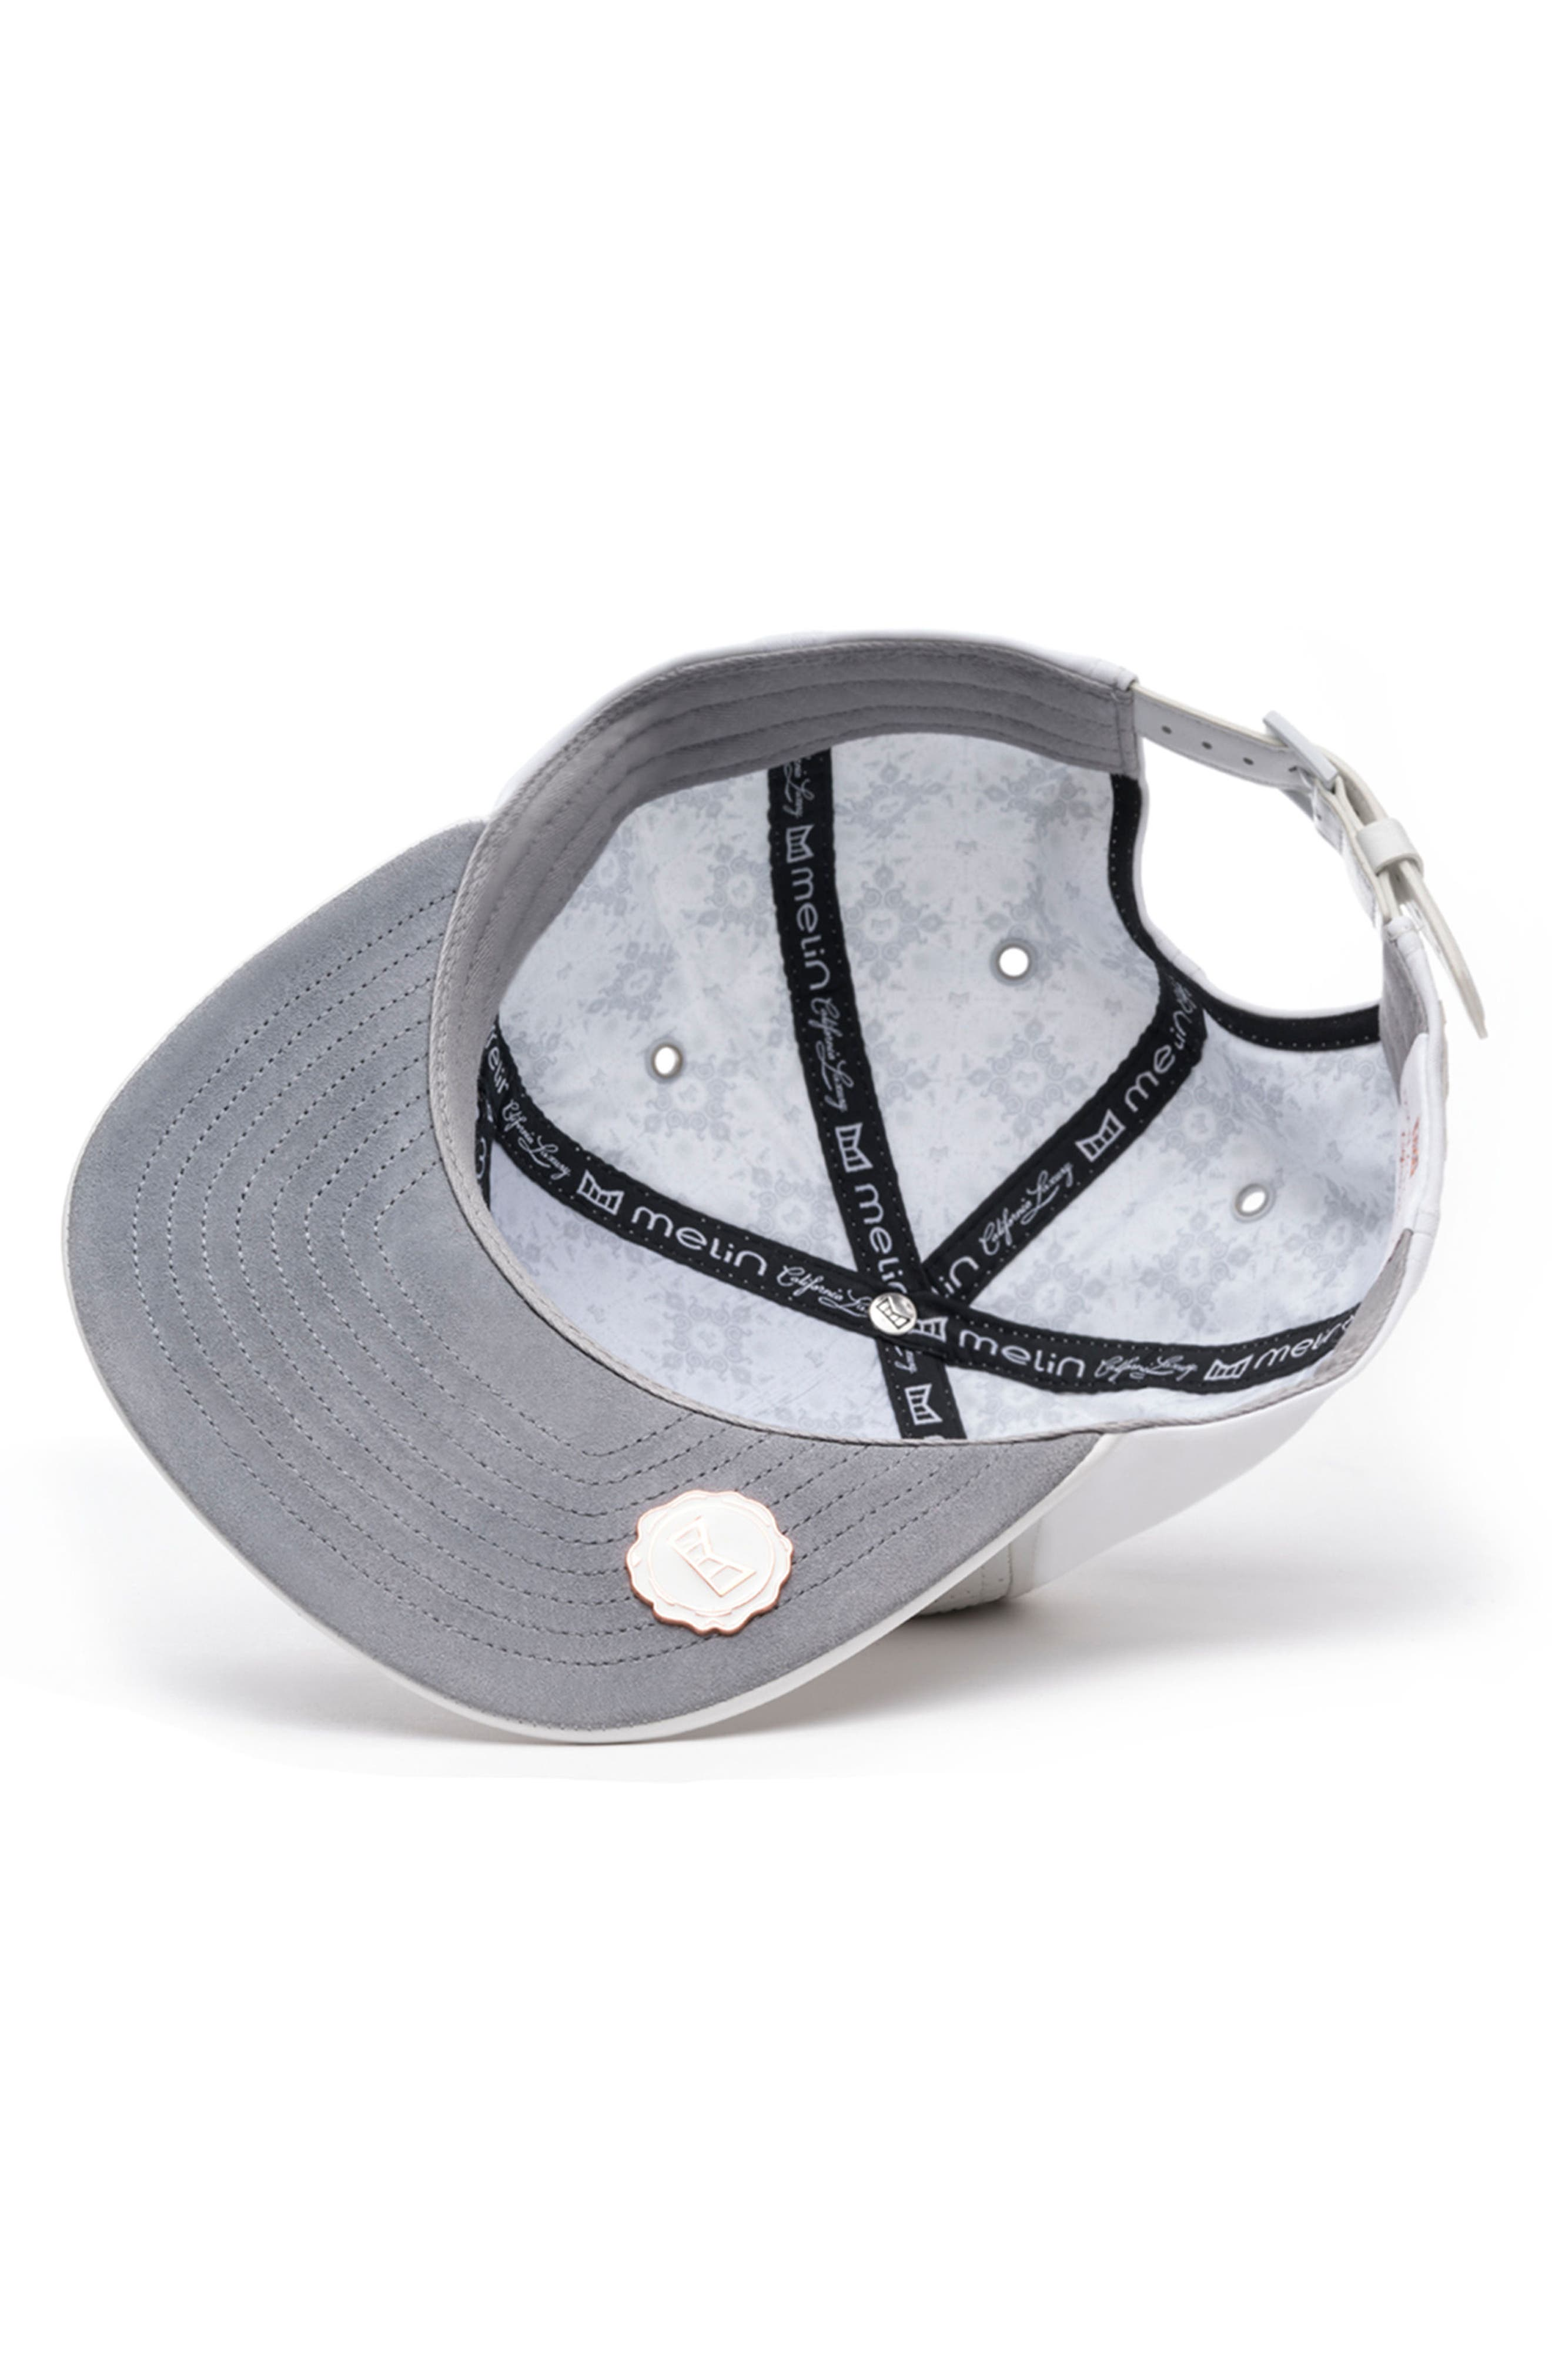 Dynasty V Limited Edition Leather, Cashmere, Wool & Diamond Cap,                             Alternate thumbnail 4, color,                             101